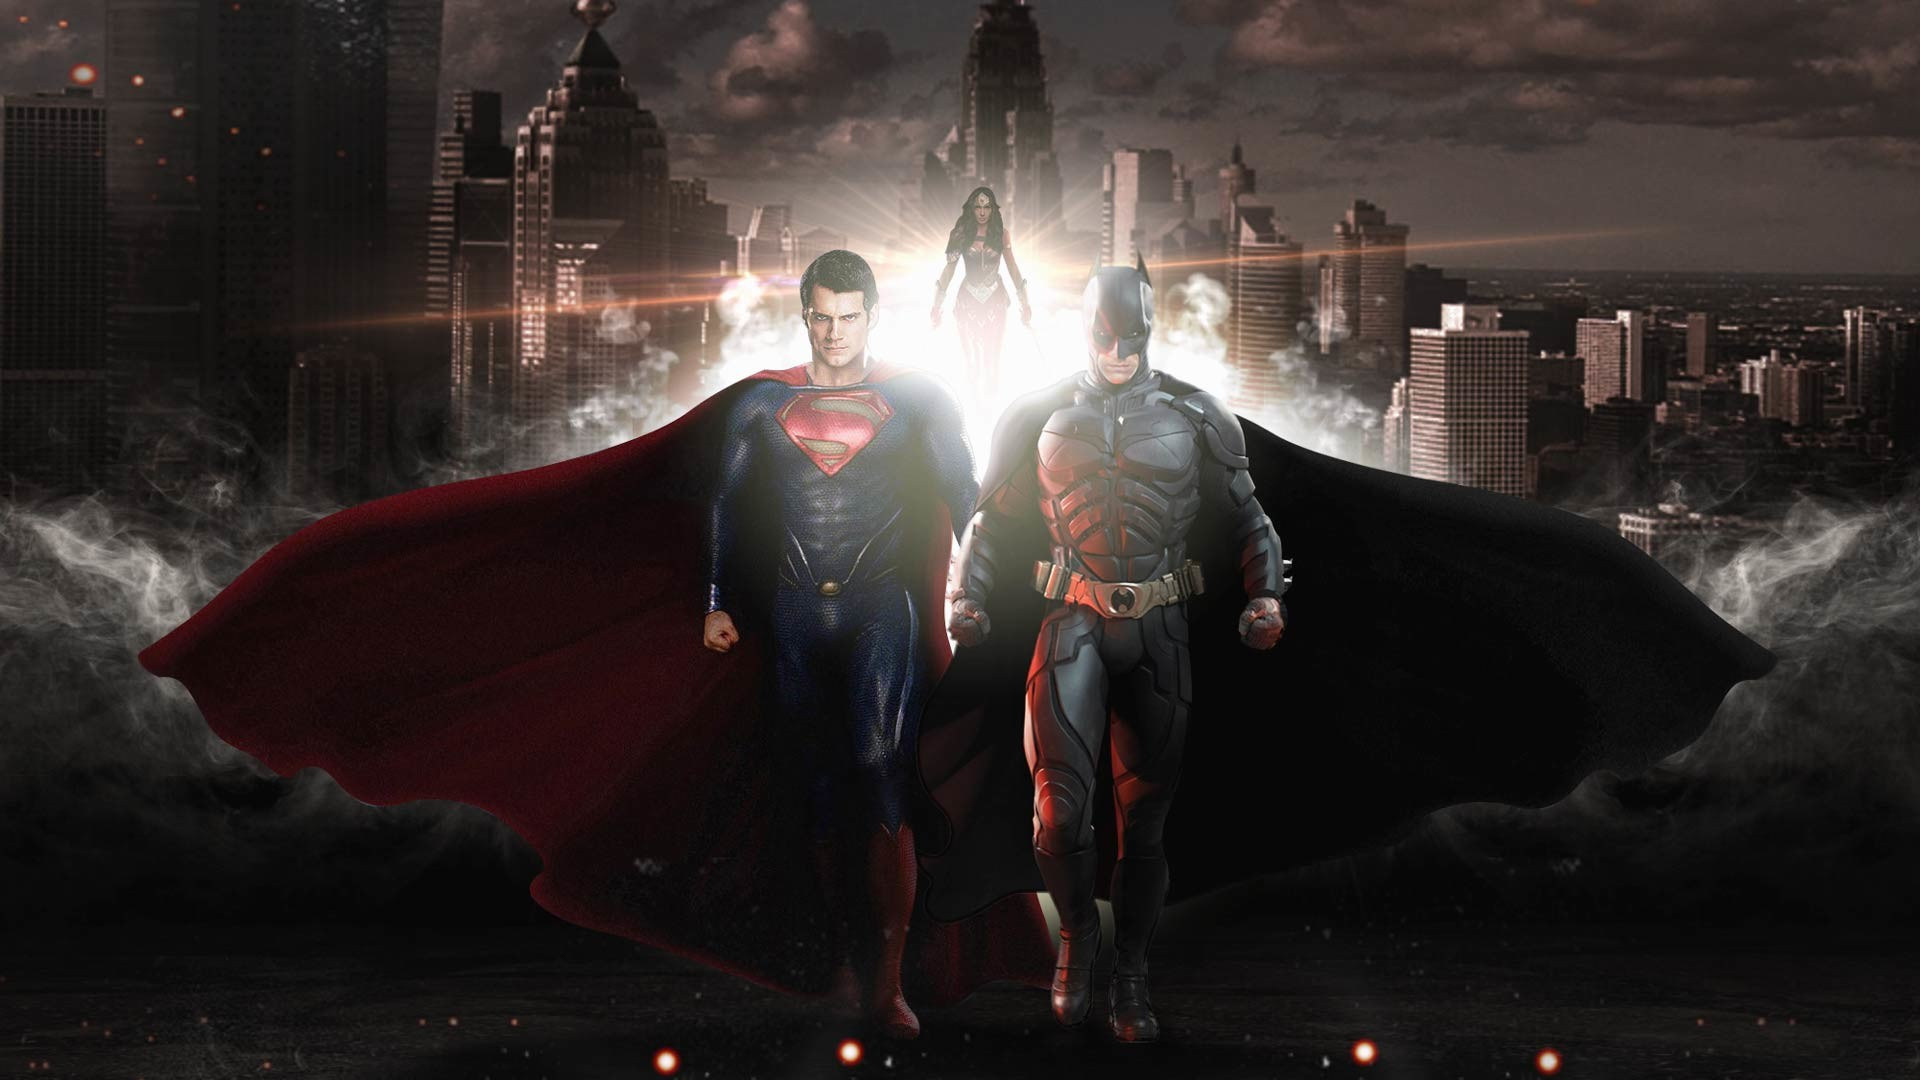 Batman vs Superman 1080p Wallpapers 77 images 1920x1080